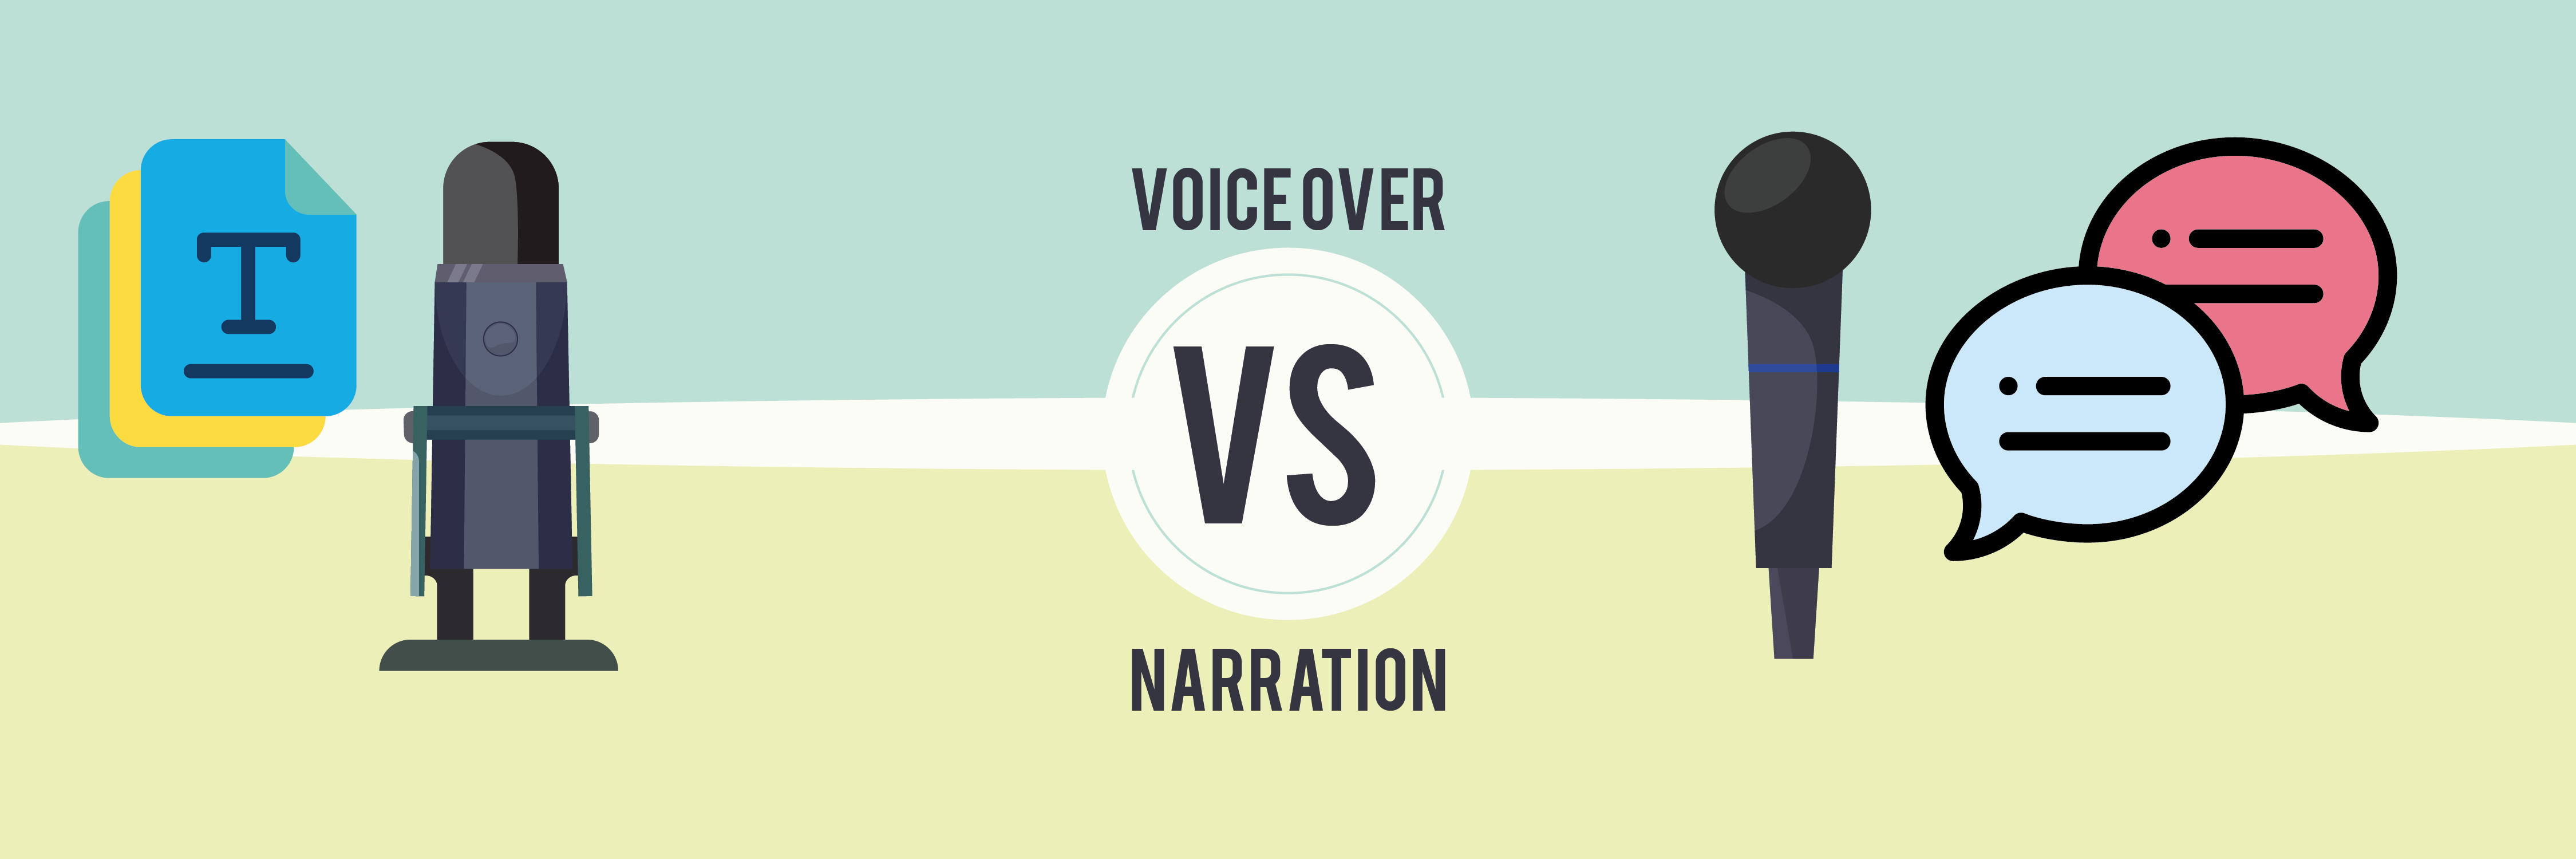 voice-over-vs-narration-microphone-vs-text-and-dialogue